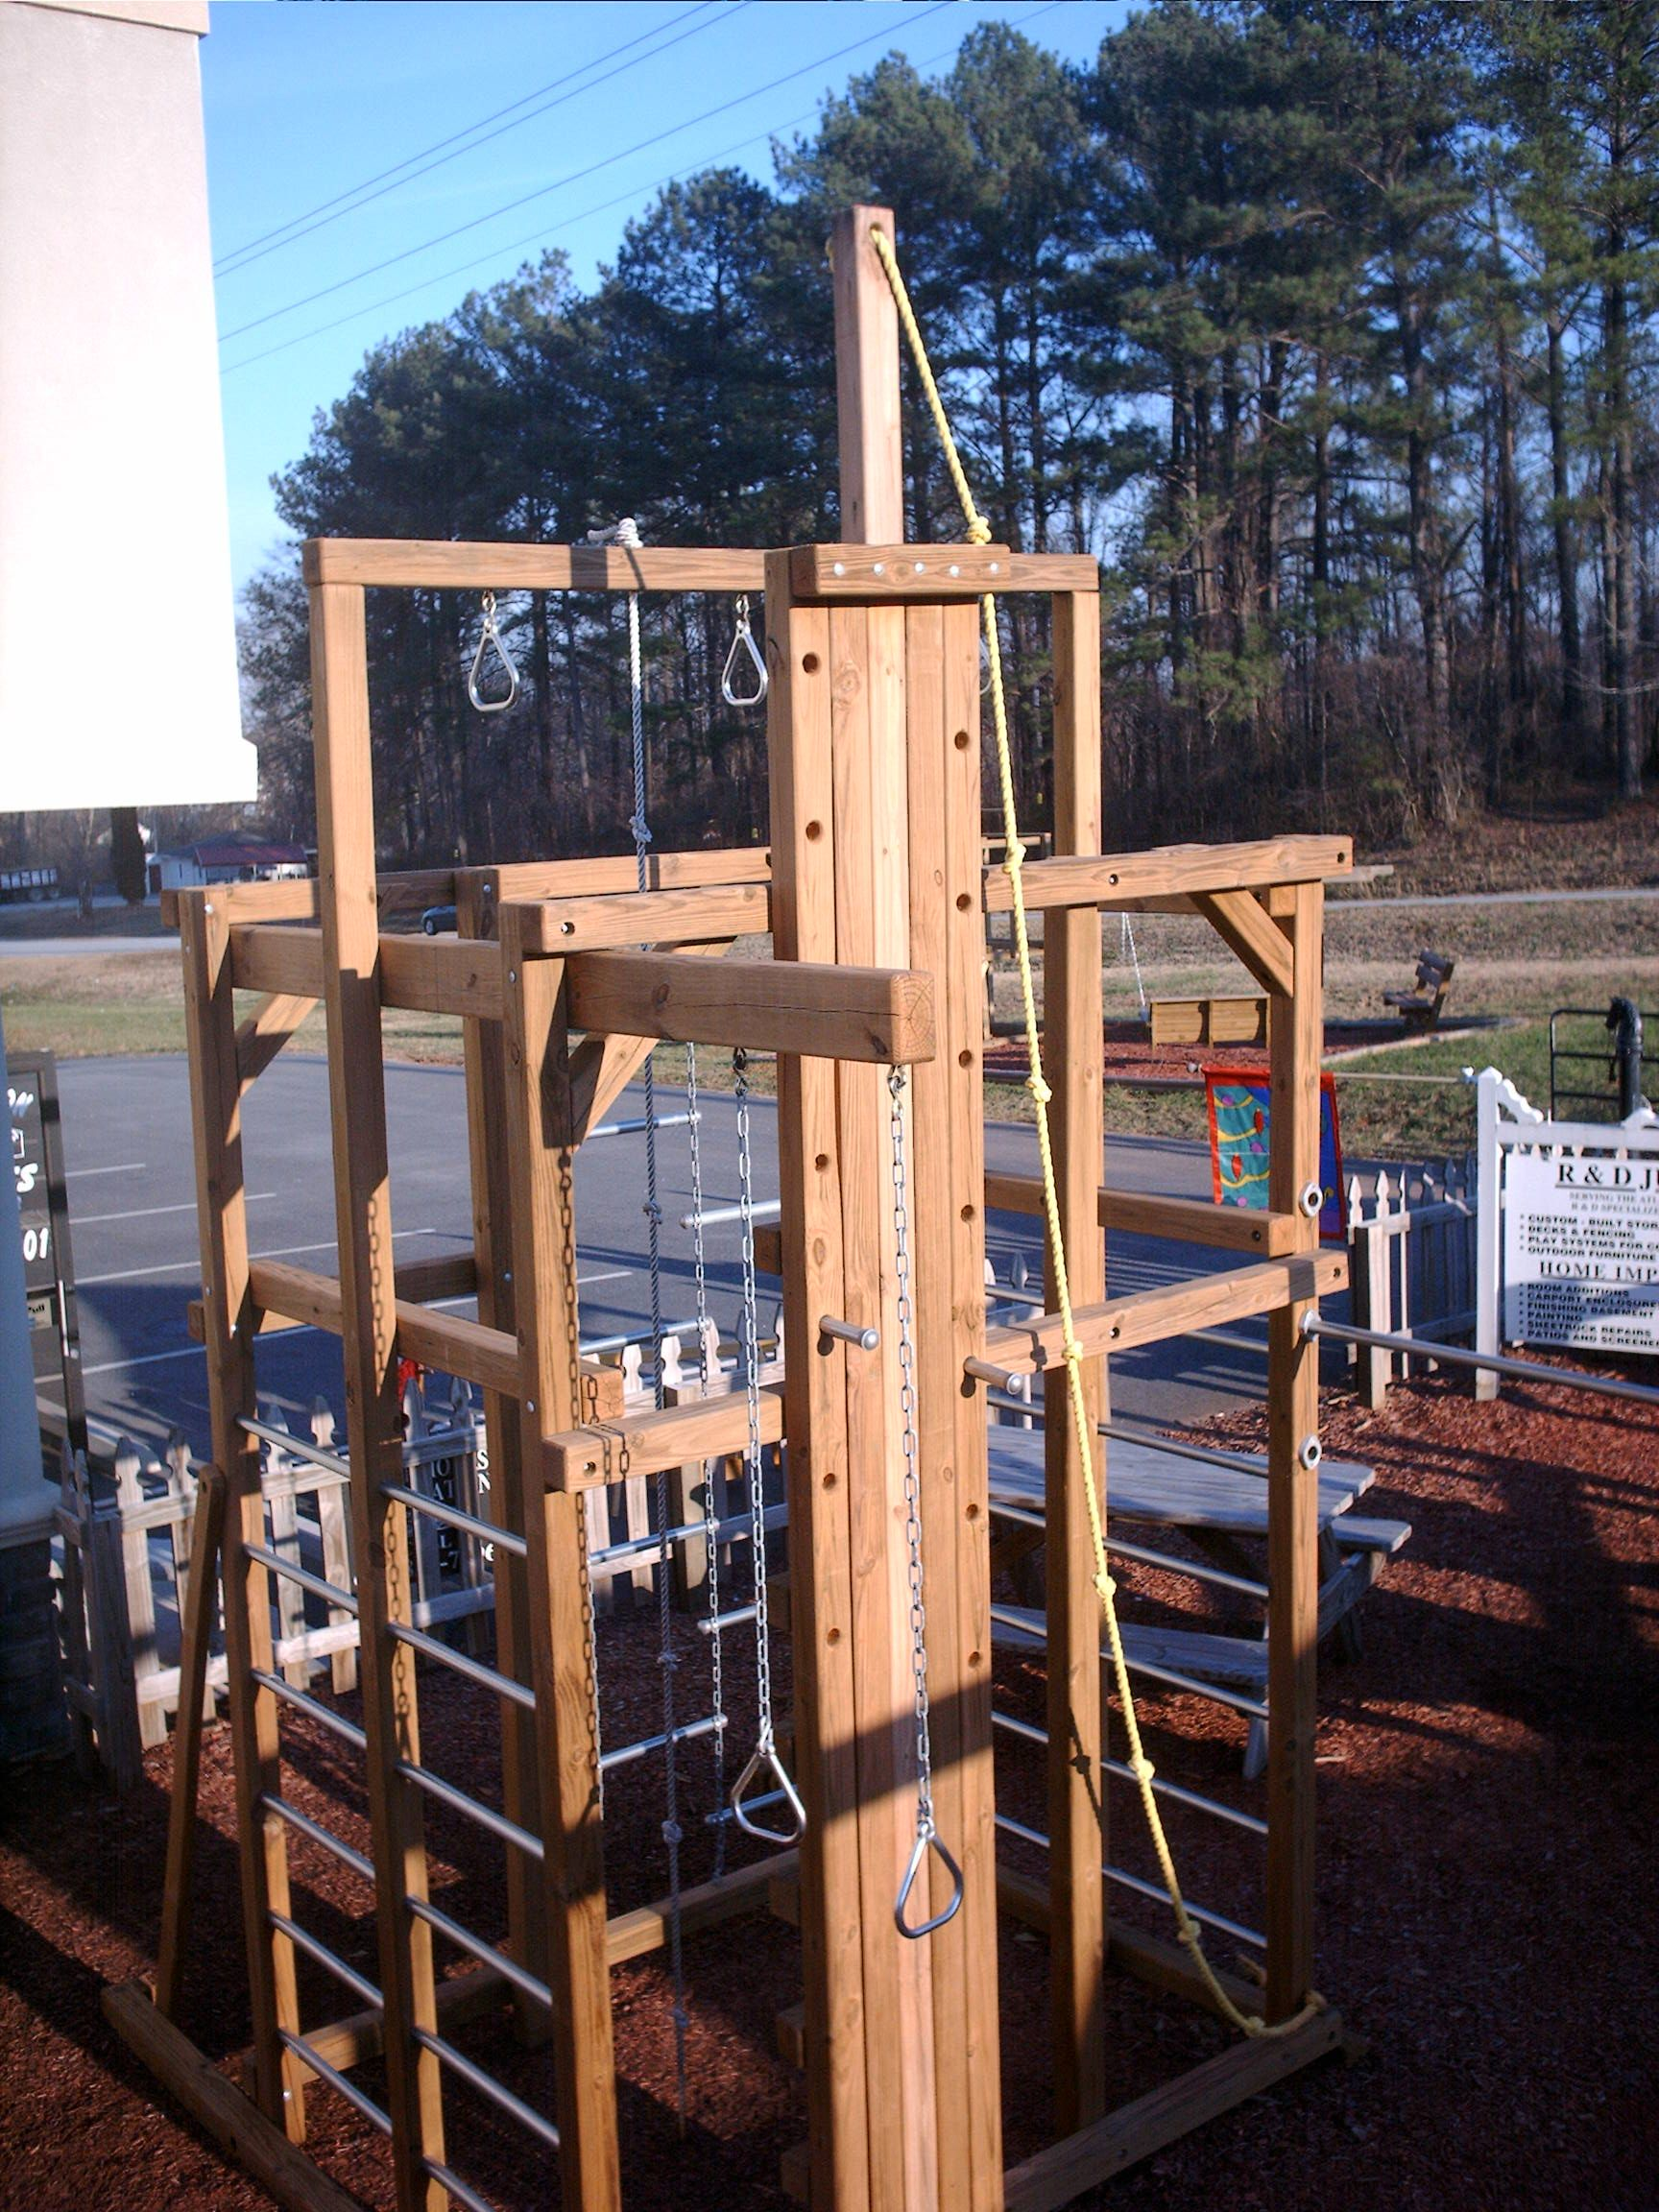 Cool jungle gym back yard ideas pinterest jungle for Diy jungle gym ideas